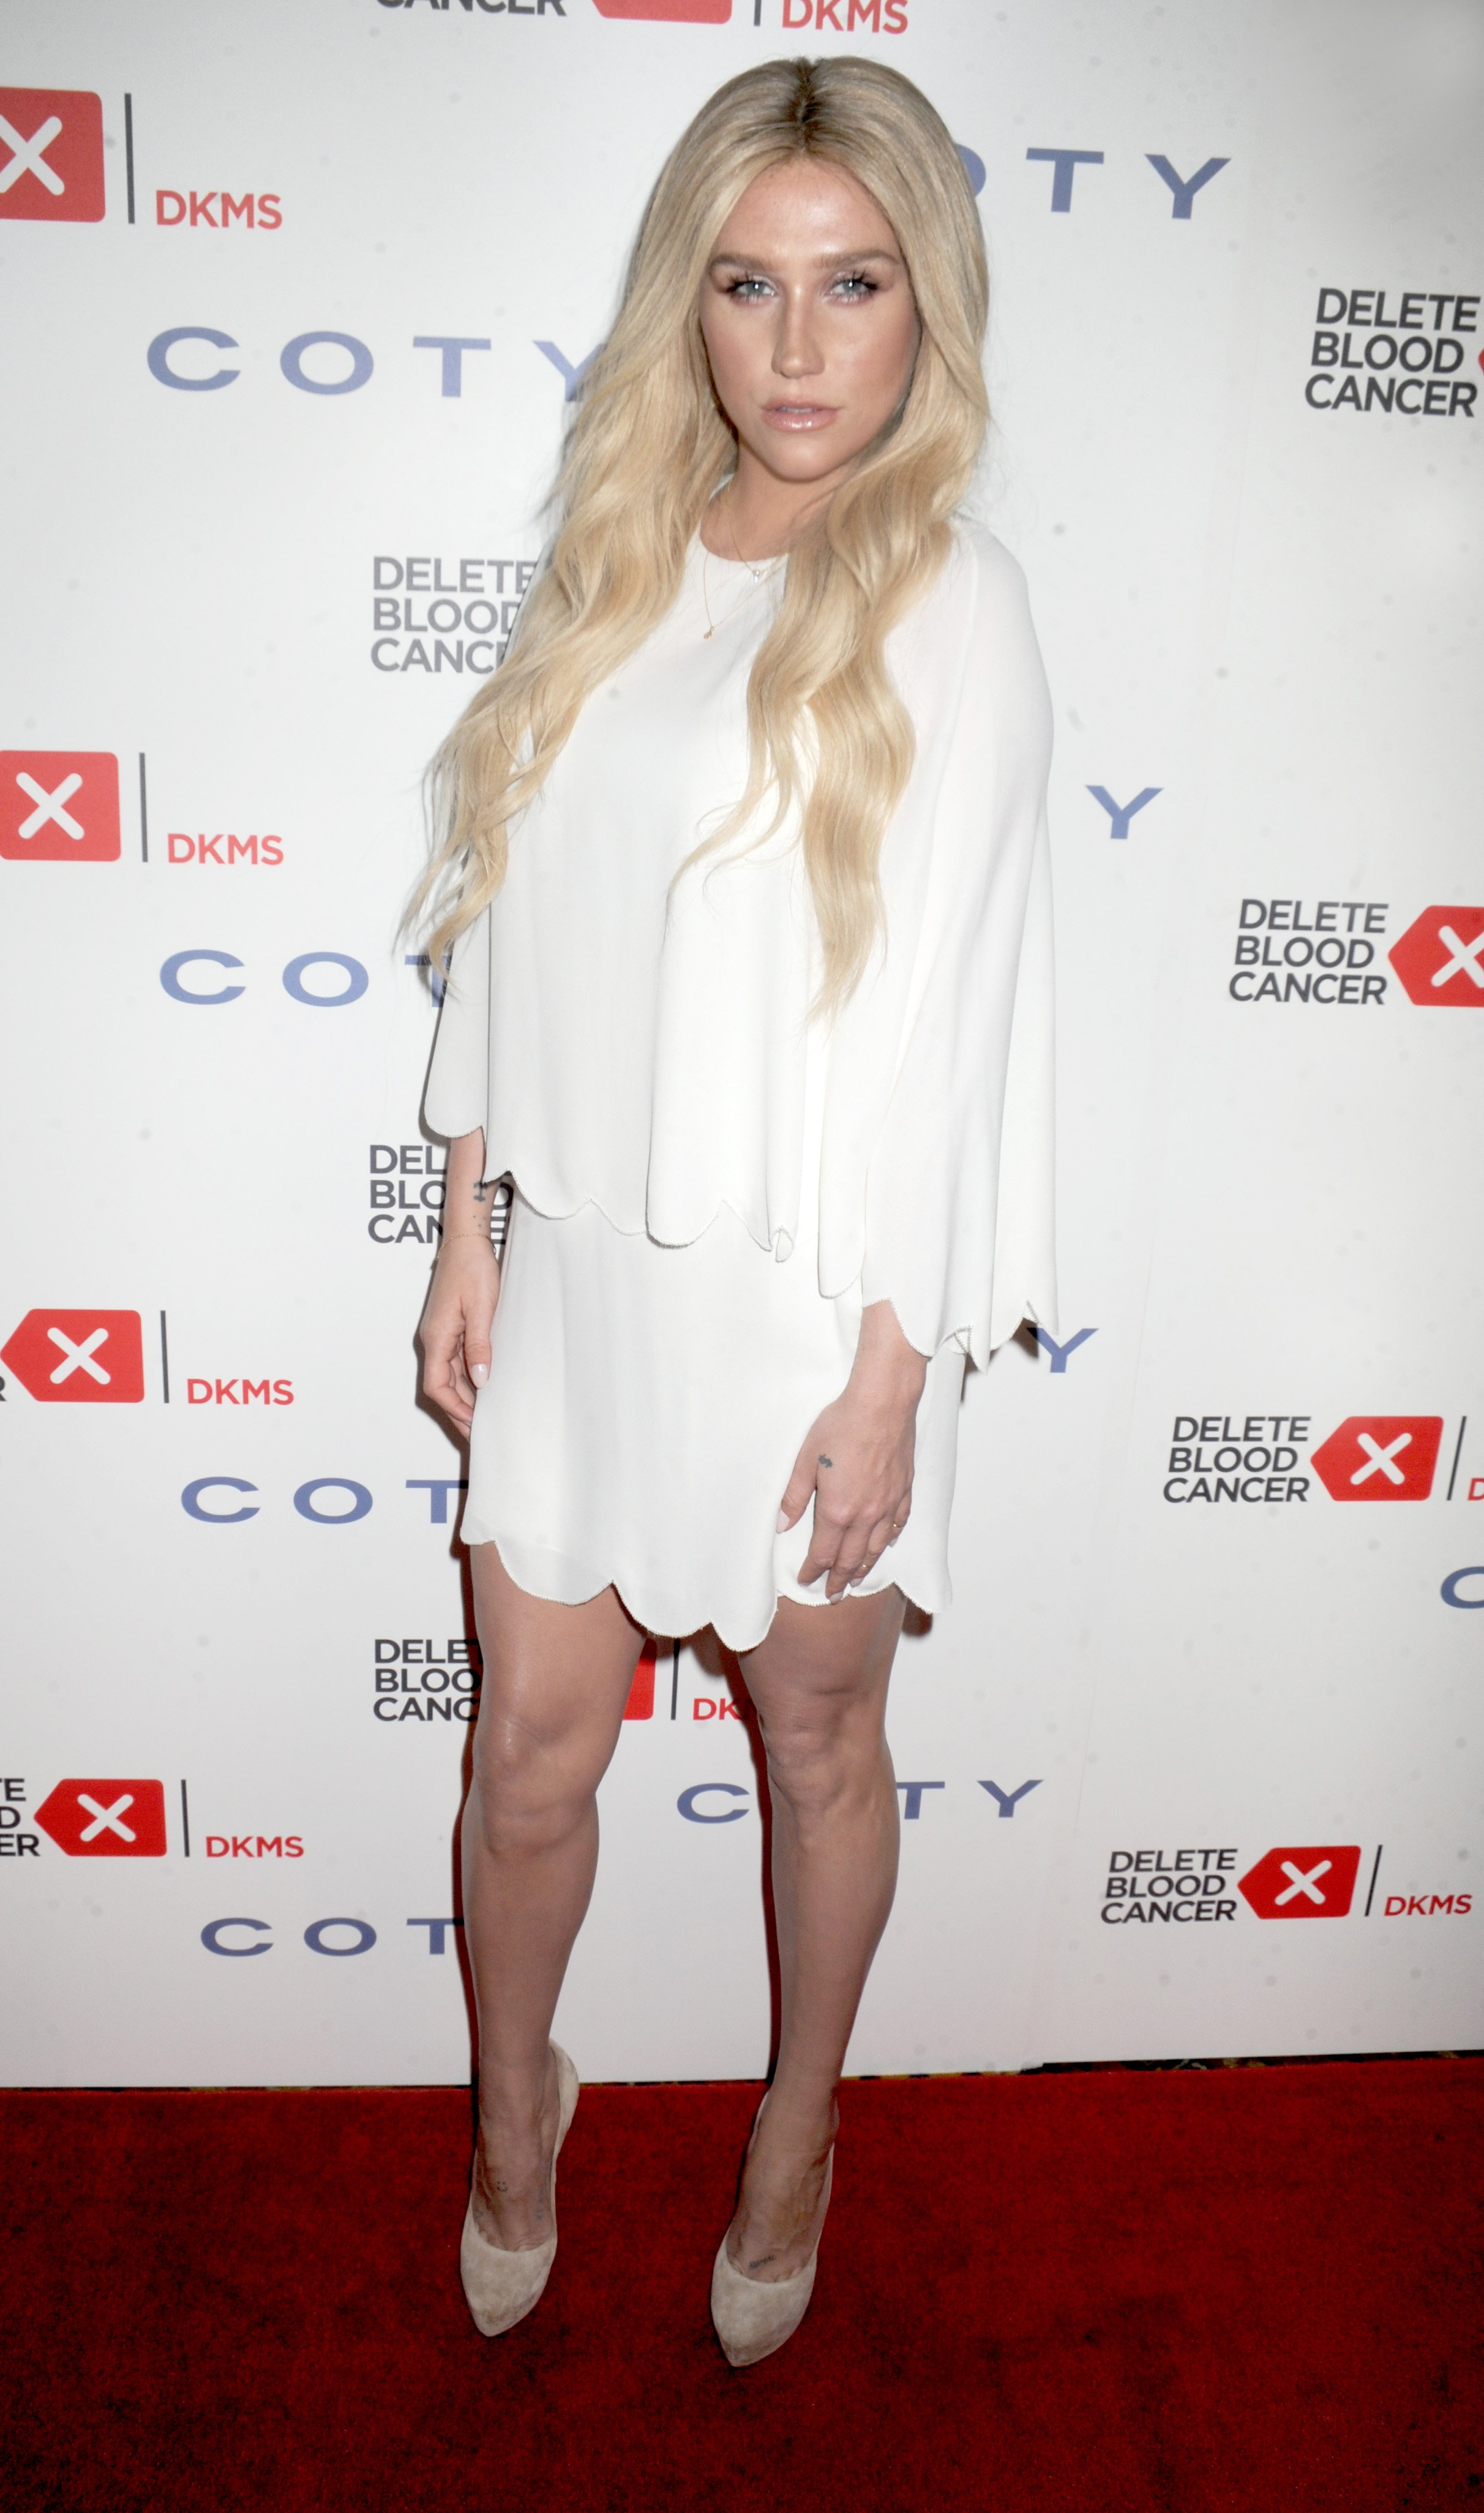 Kesha attends the 9th Annual Delete Blood Cancer Gala at Cipriani, Wall Street on April 16, 2015 in New York City.